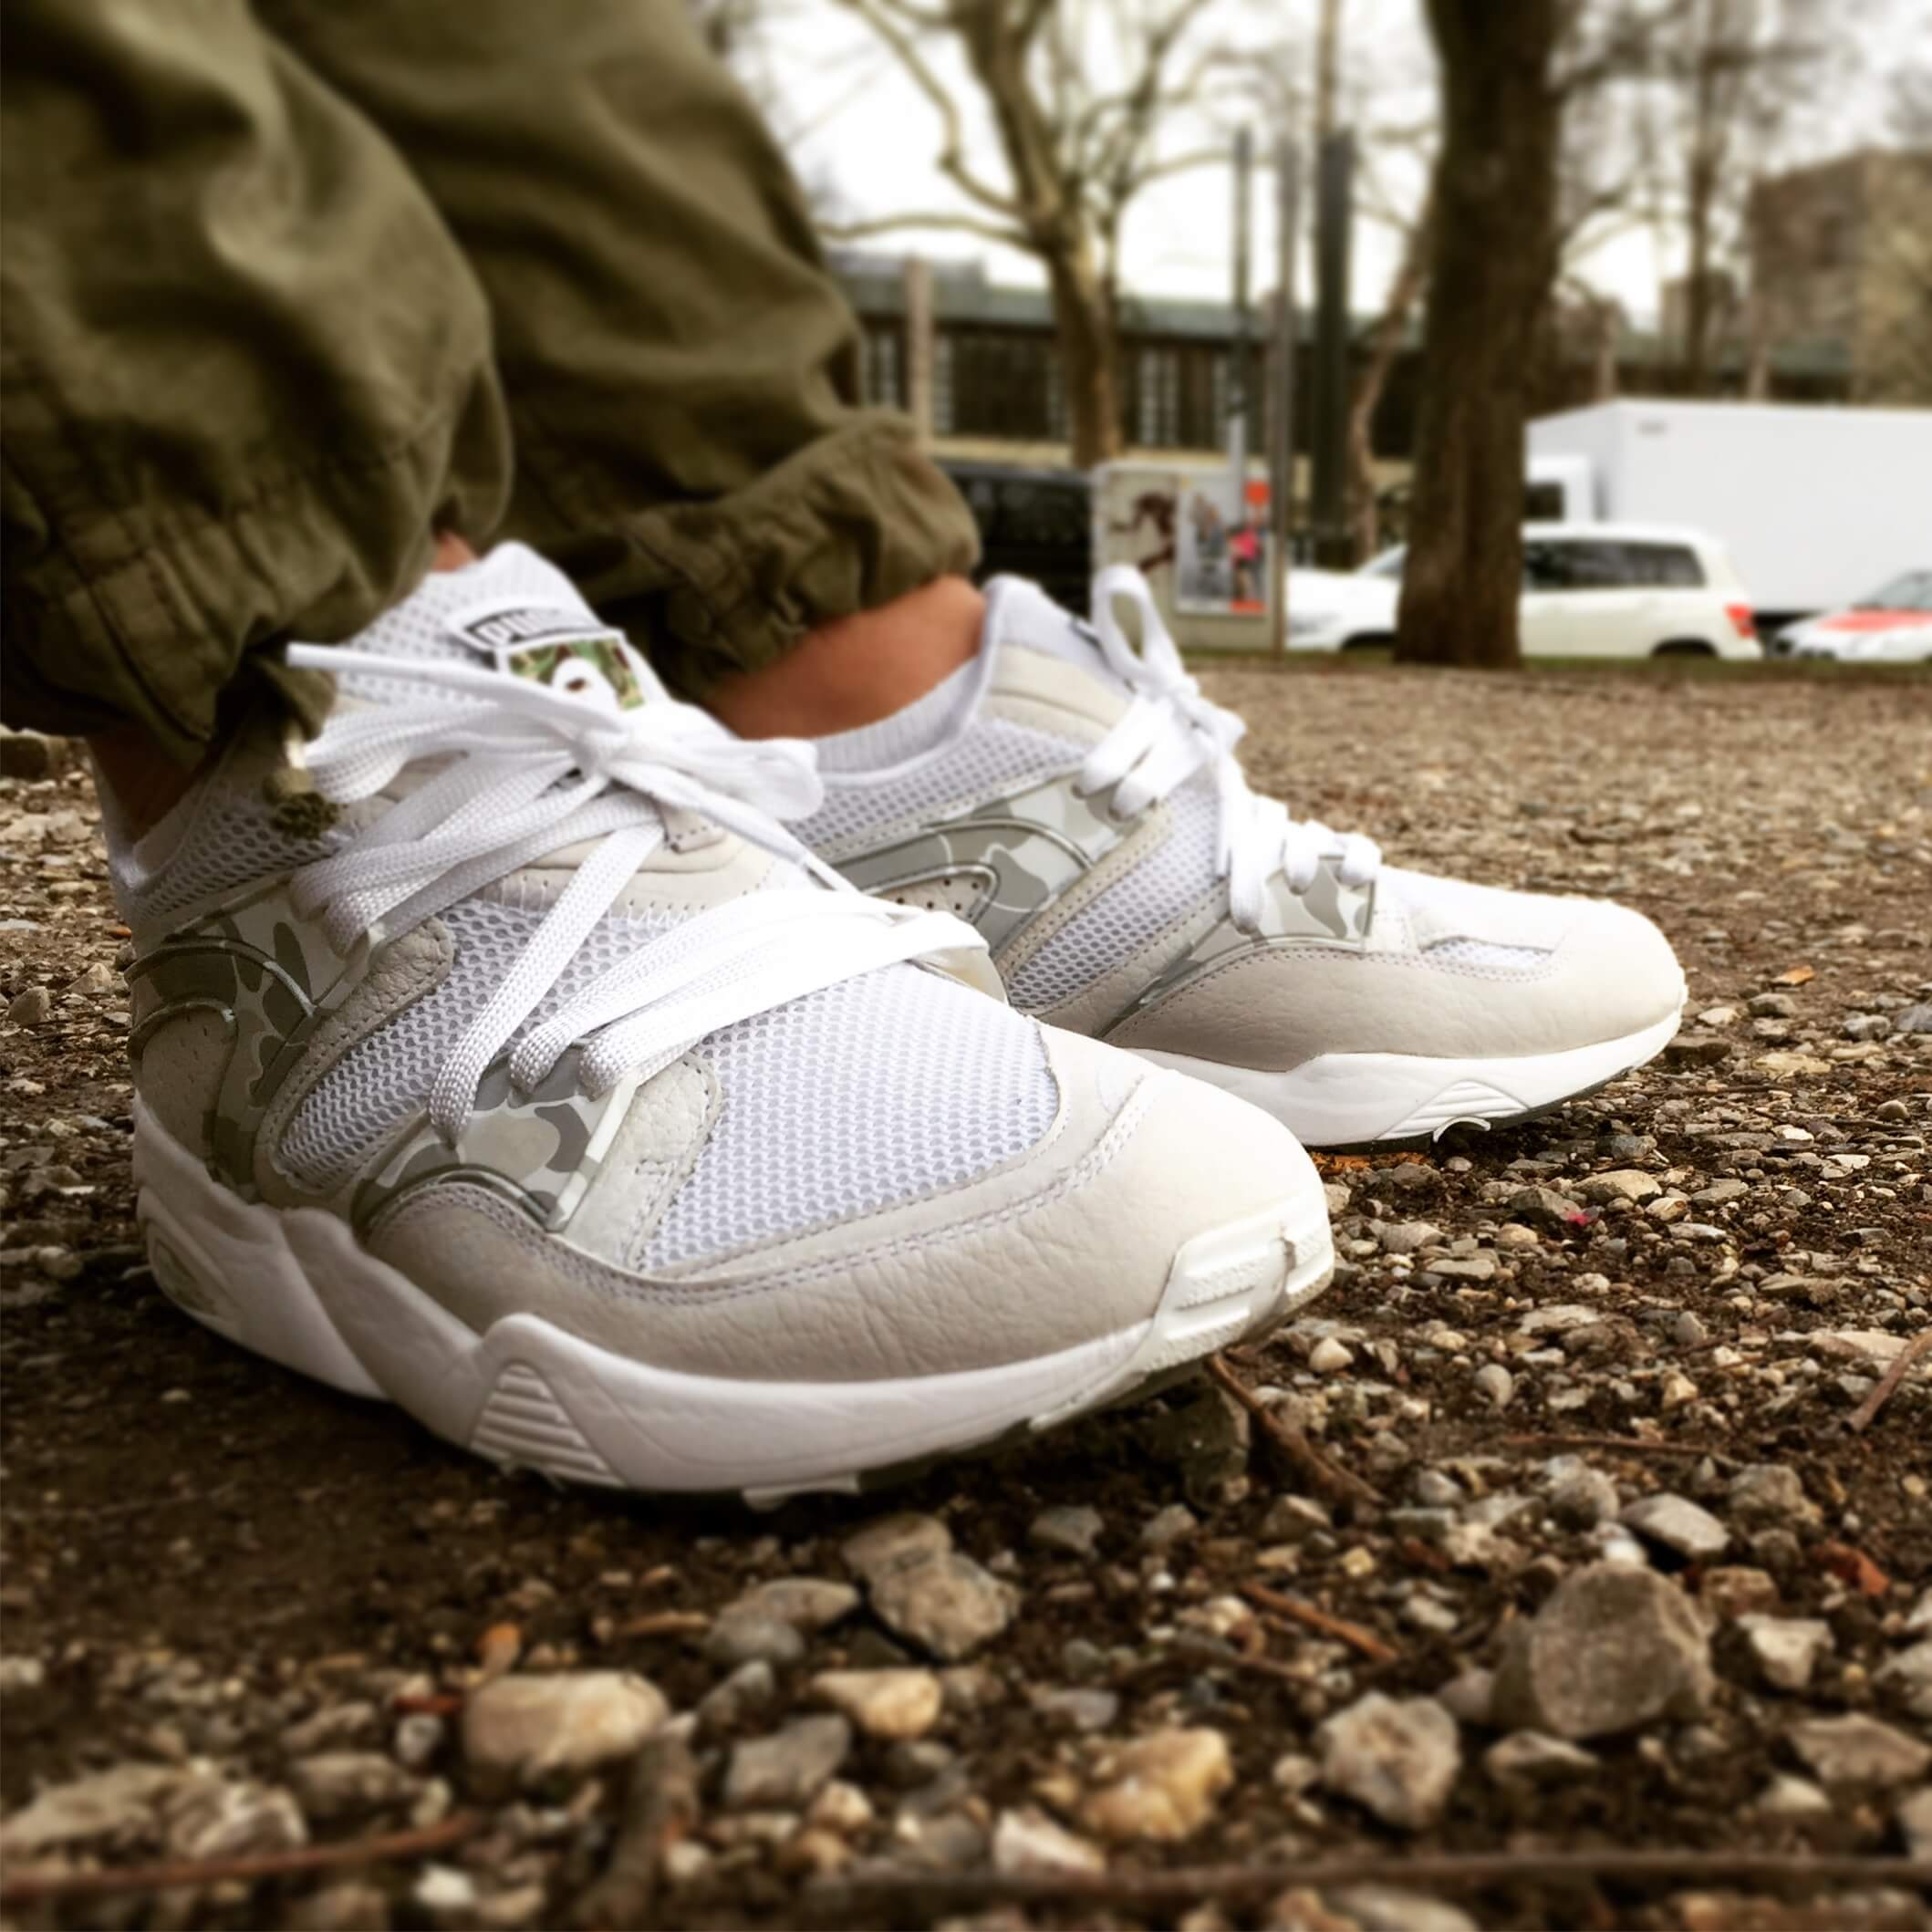 Bape-Puma-Blaze-of-Glory-SIde-View-Benstah